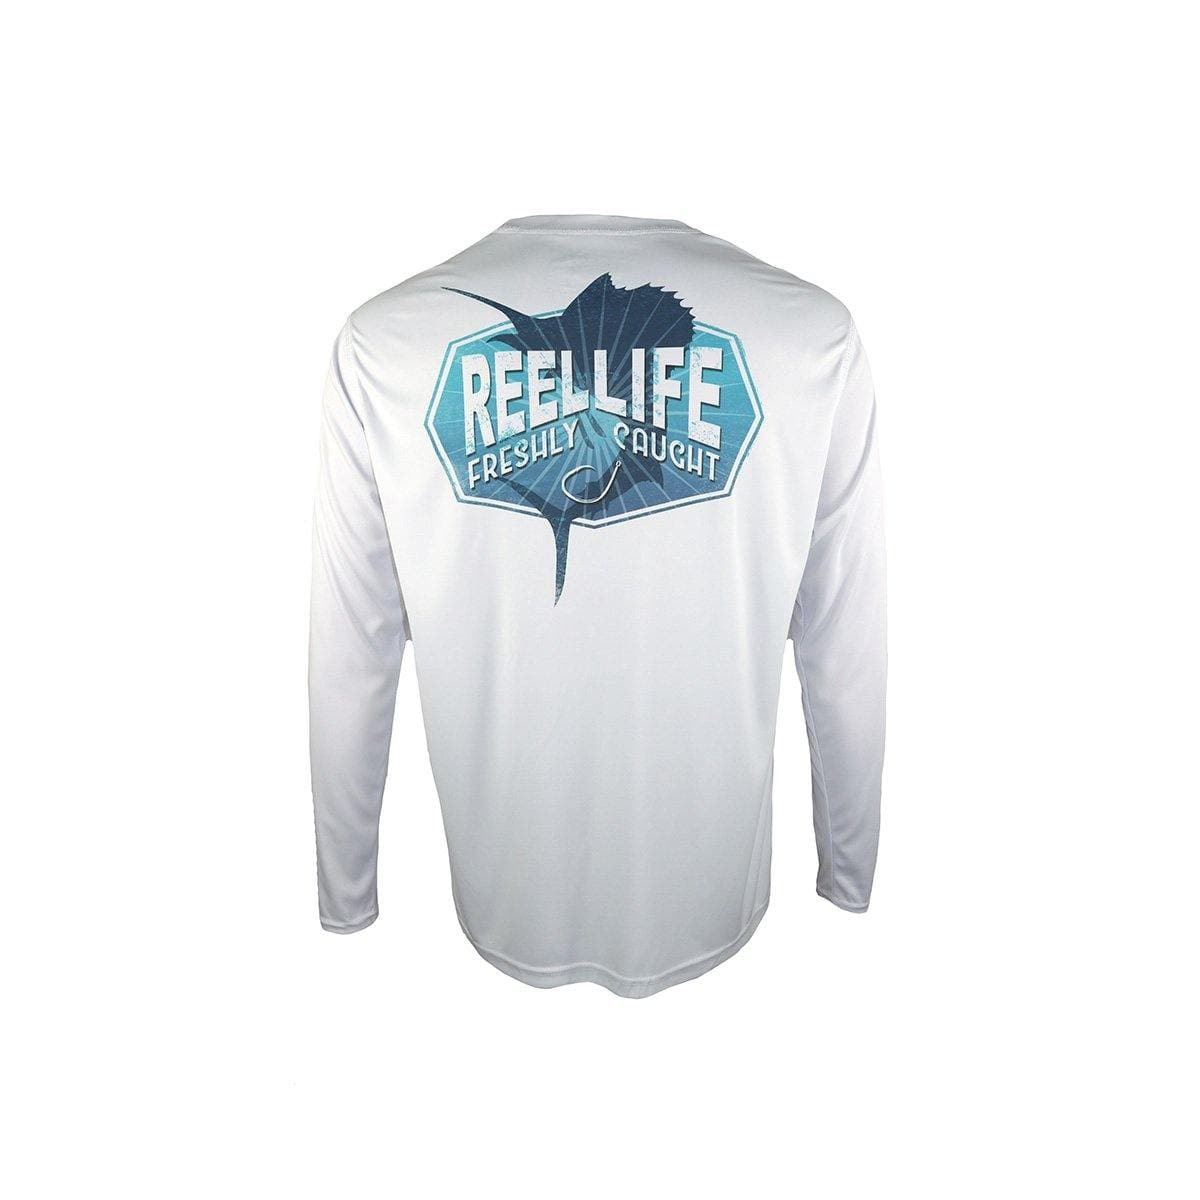 "Reel Life Men's Long Sleeve UV ""Freshly Caught Sailfish""- White - Reel Life"